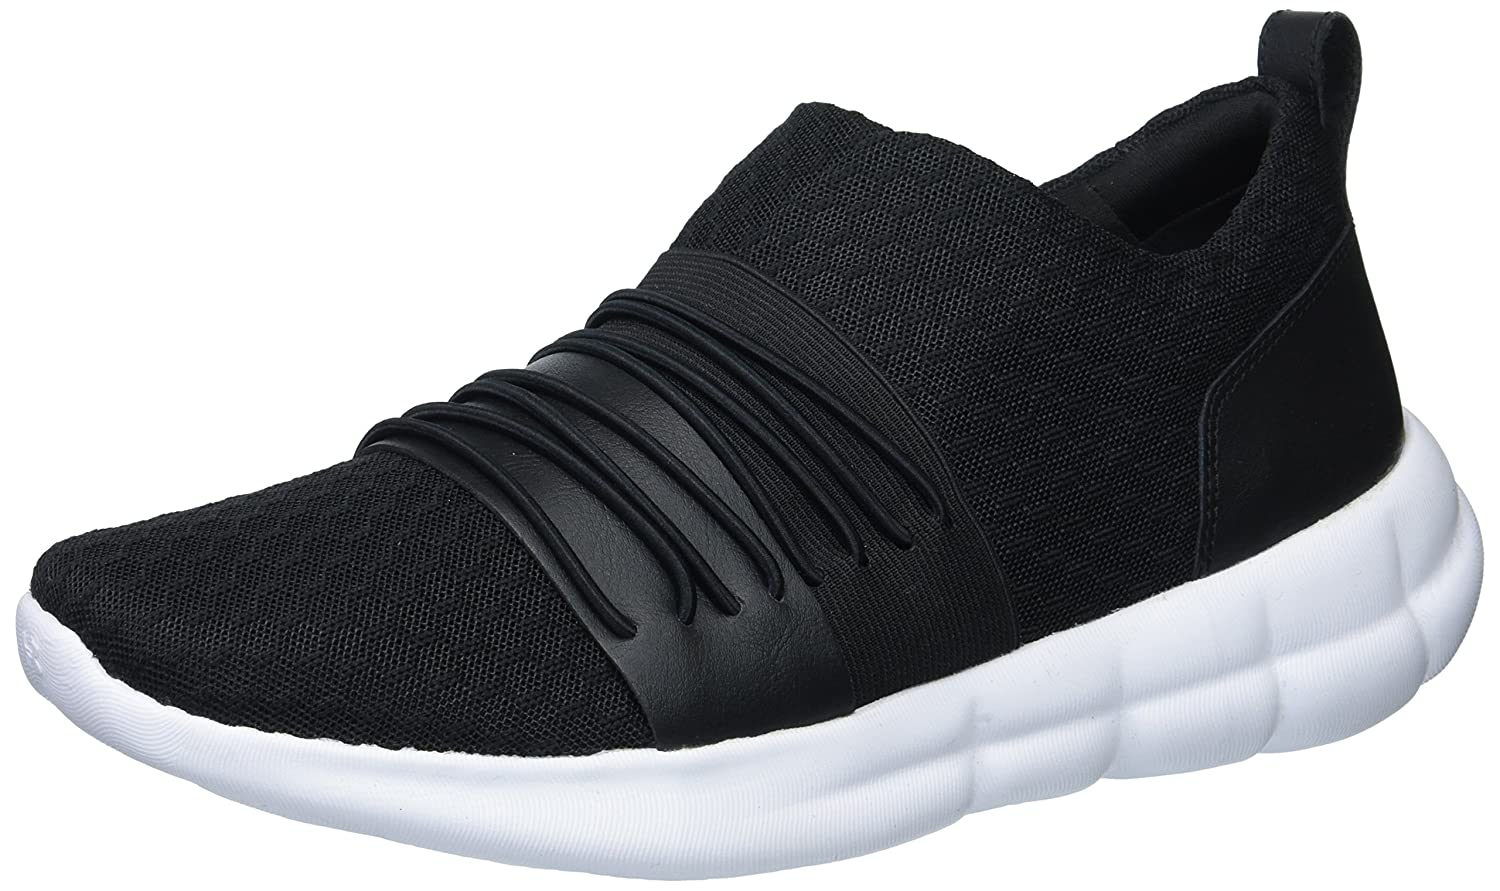 Under Armour Women's Slouchy Slip Sneaker B0728BZX4K 7 M US|Black (001)/White